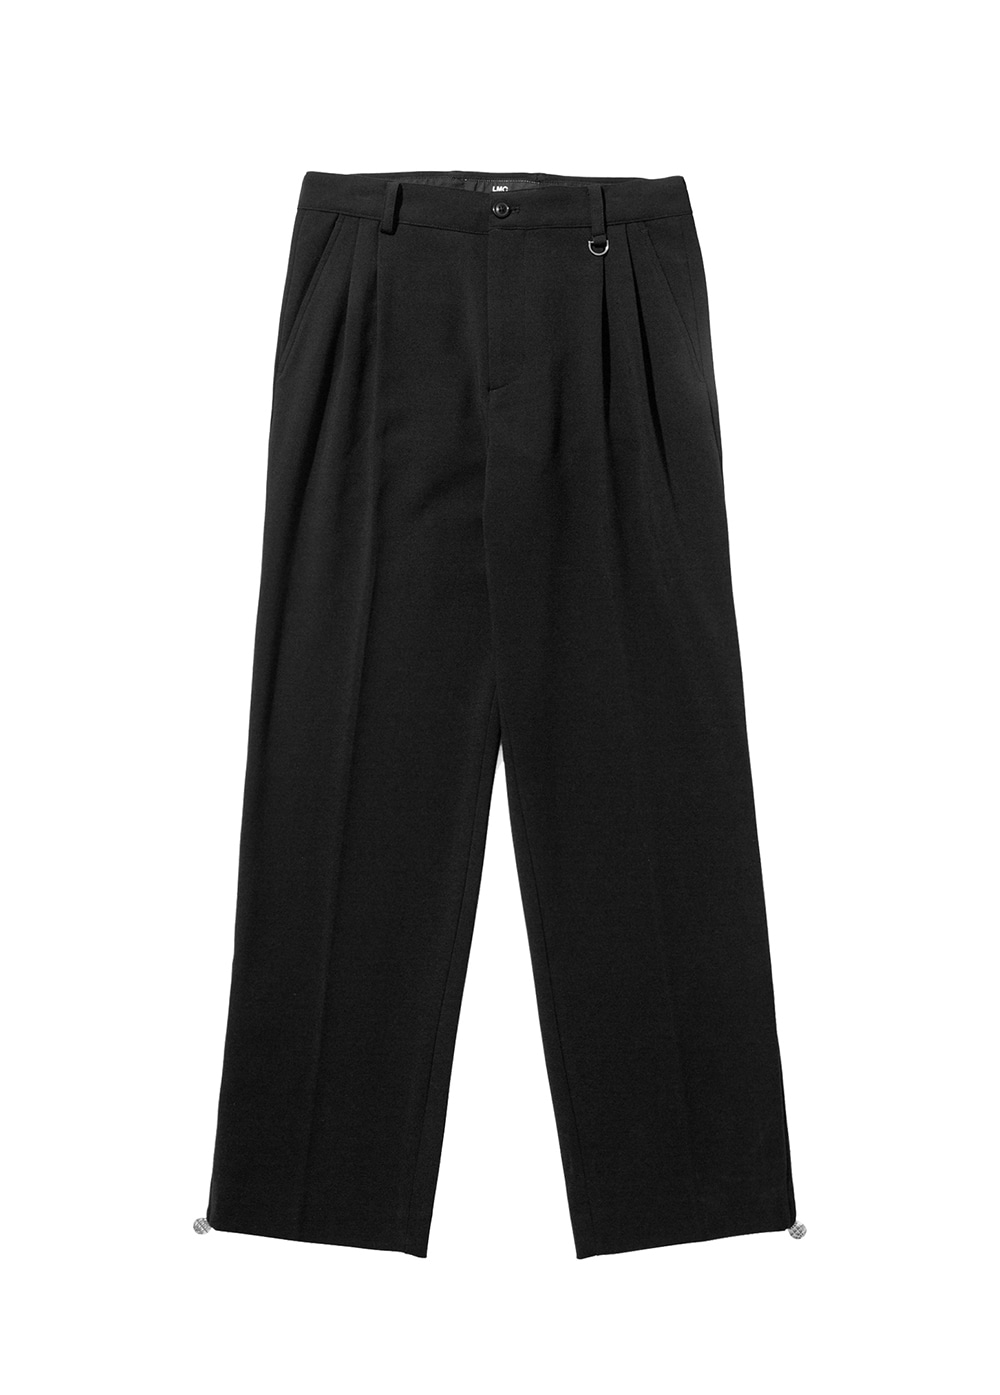 LMC SIDE ZIP DRESS PANTS black